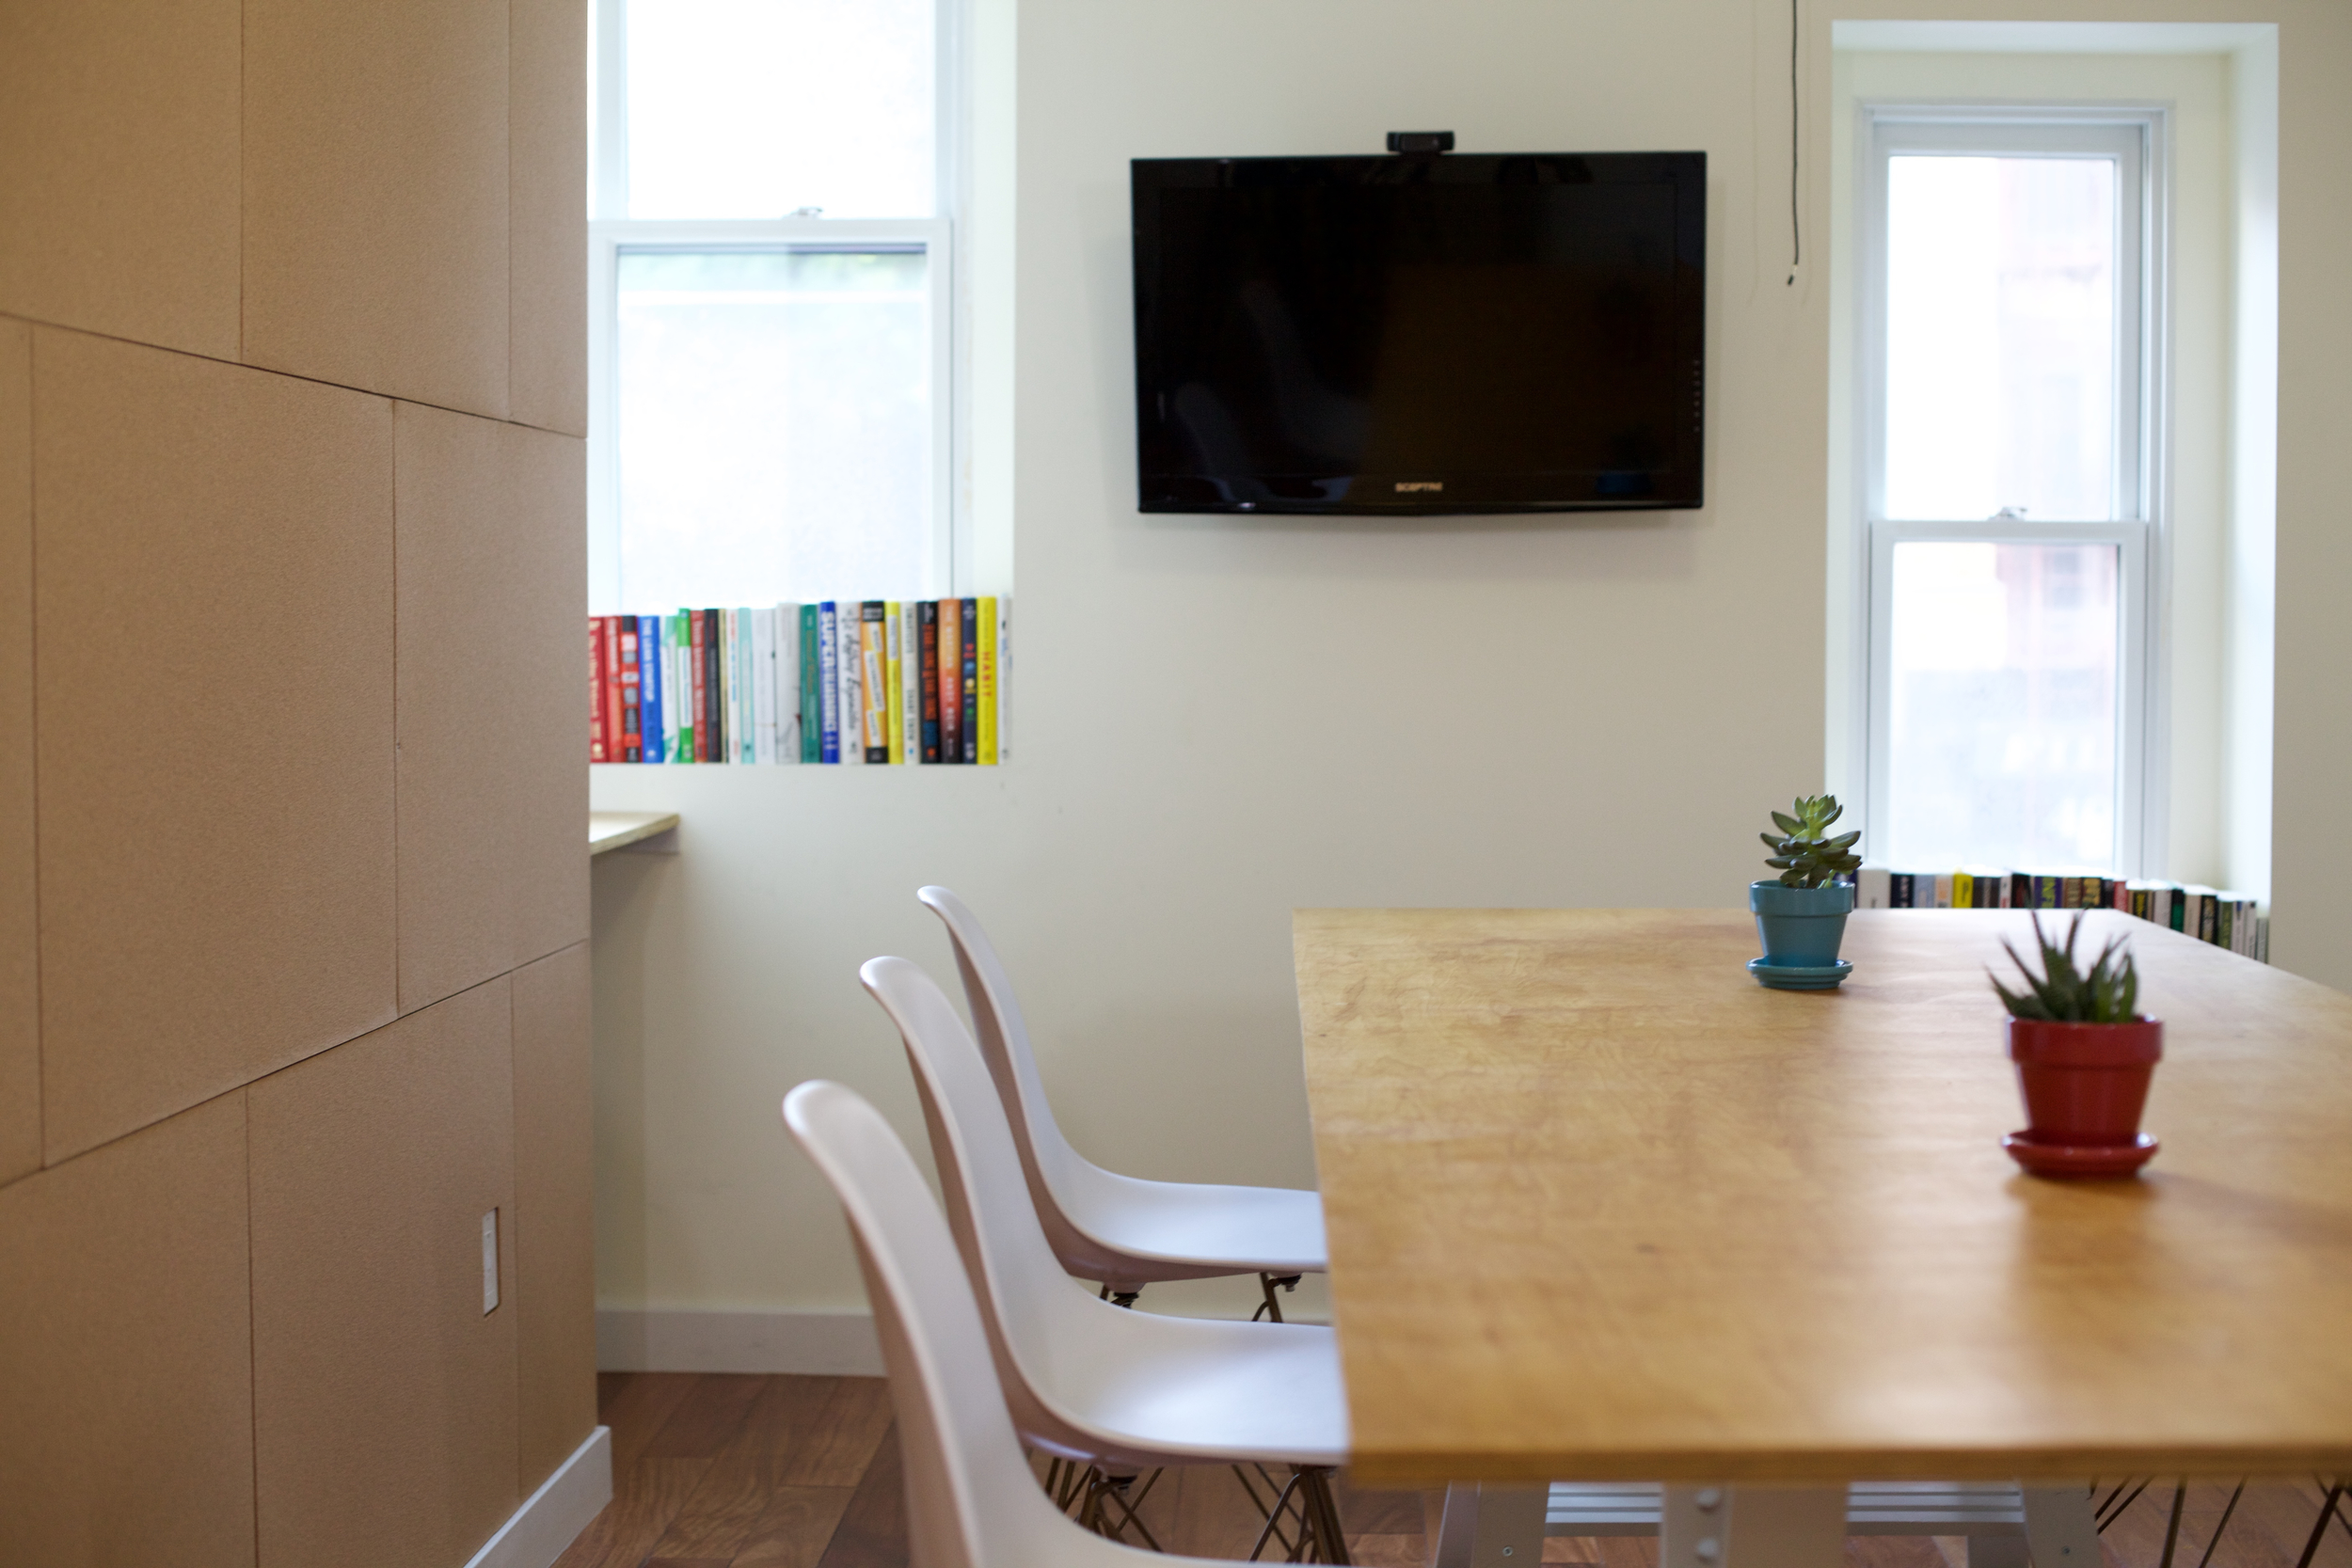 zmaic-one-month-interior-design-conference-room-corkboard-wall-custom-table.jpg